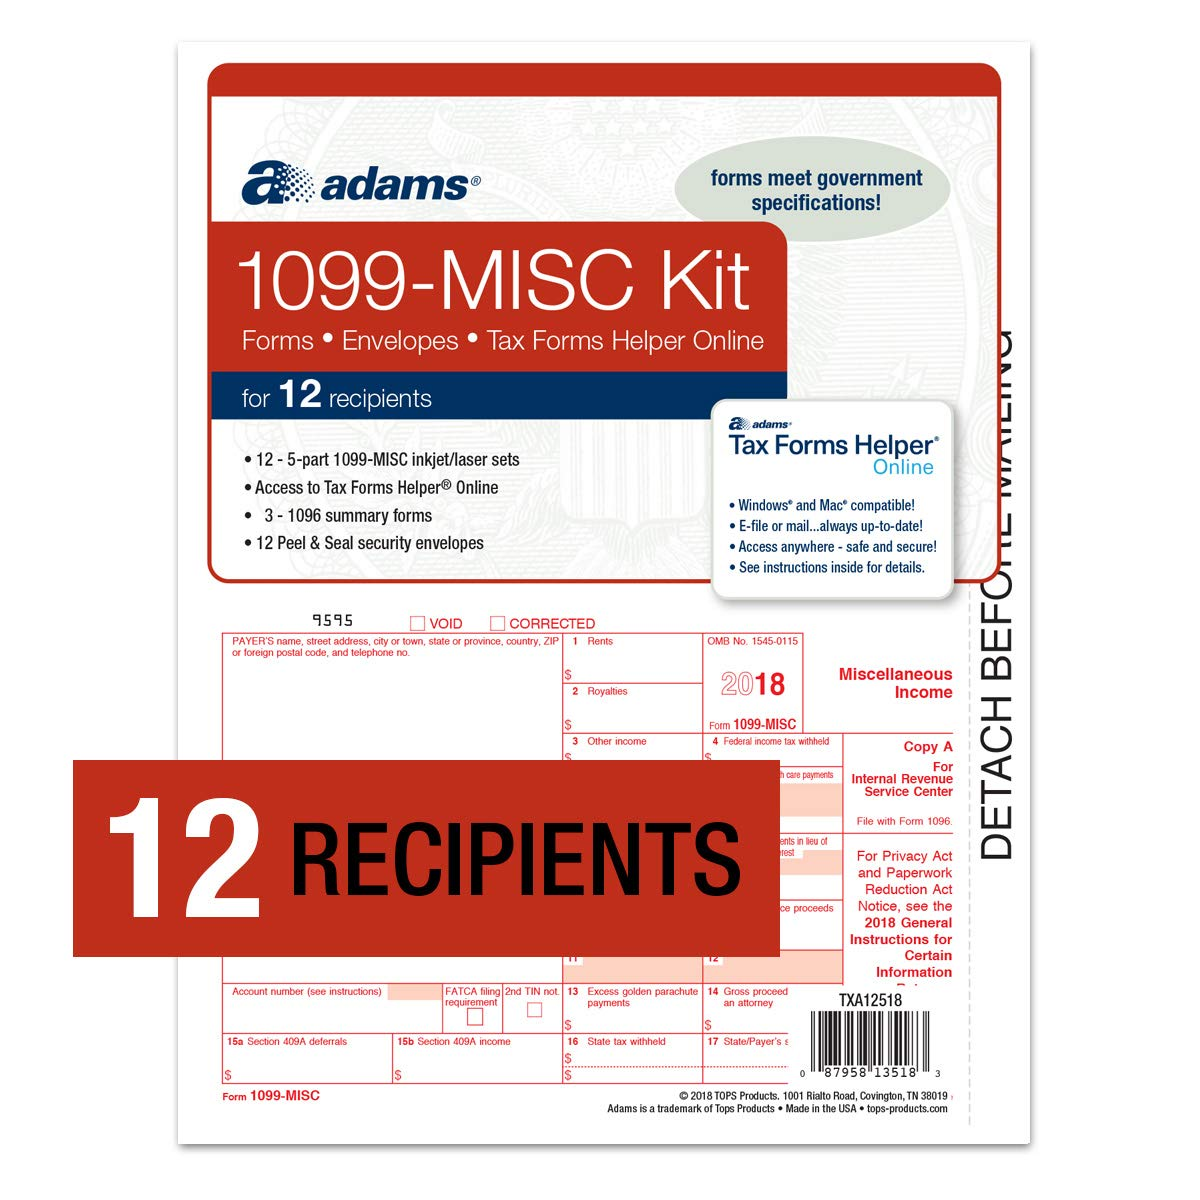 Adams 1099-MISC Tax Forms for 2018-5-Part Inkjet/Laser Sets for 12, Three 1096 Summary Forms, 12 envelopes & Access to Adams TFH Online (TXA12518)